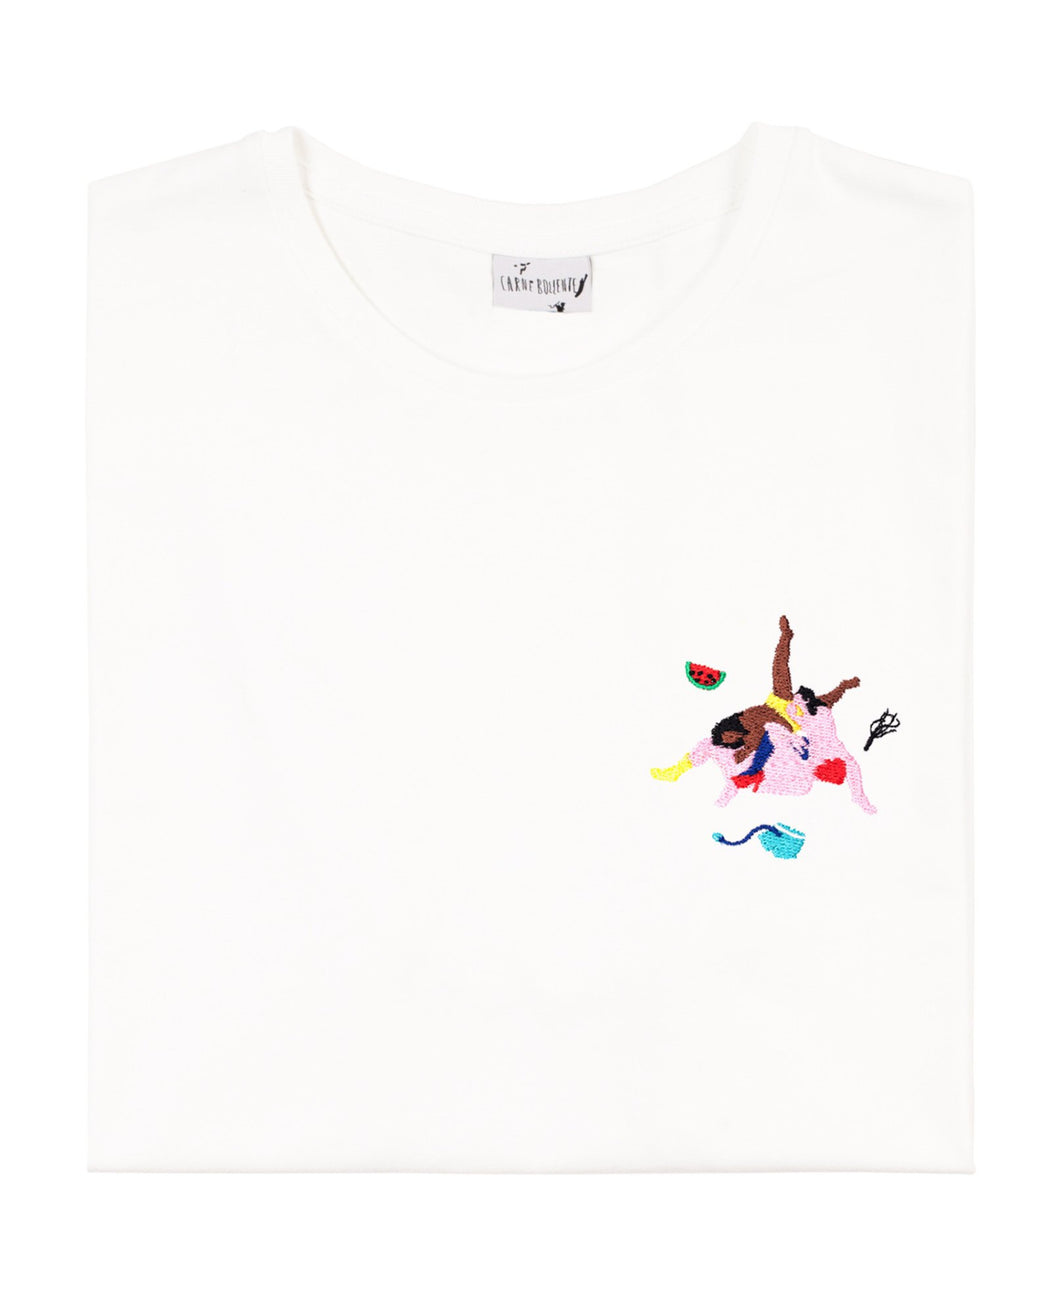 Carne Bollente:The Third Bi-Mension – Embroidered T-Shirt,white / small